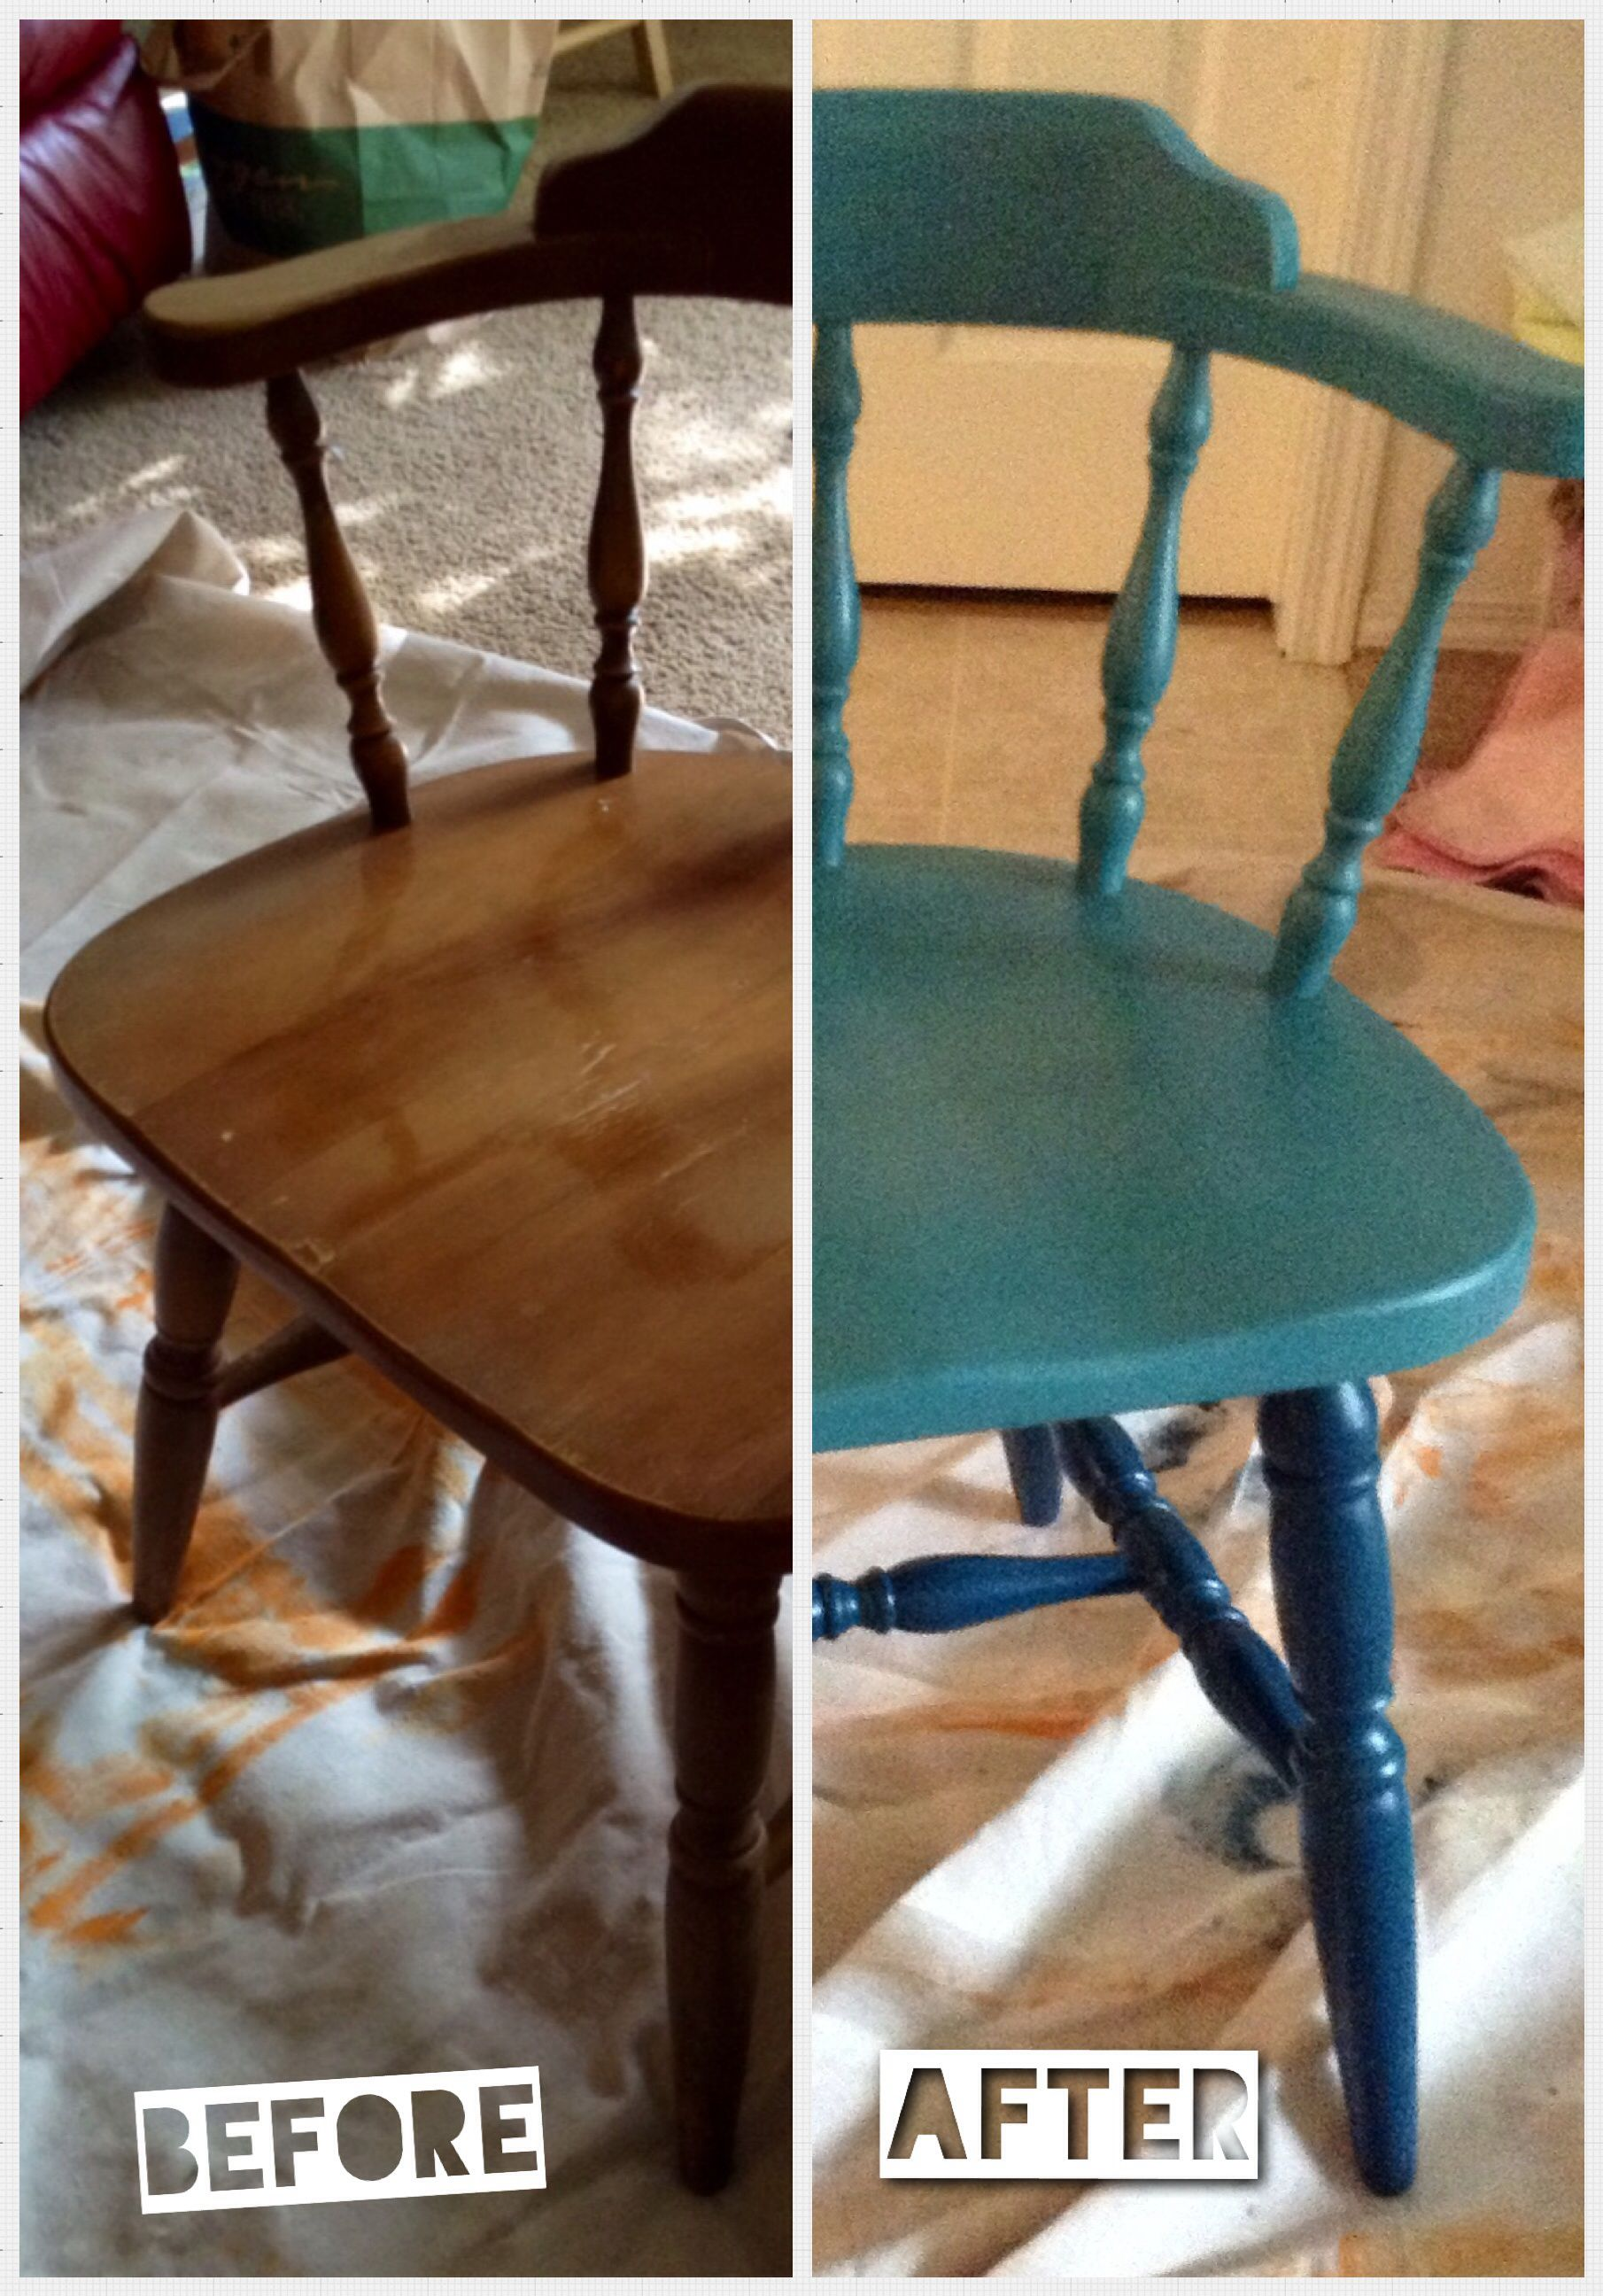 Terrific Annd My New Desk Chair Repurposed Dining Room Chair I Found Unemploymentrelief Wooden Chair Designs For Living Room Unemploymentrelieforg